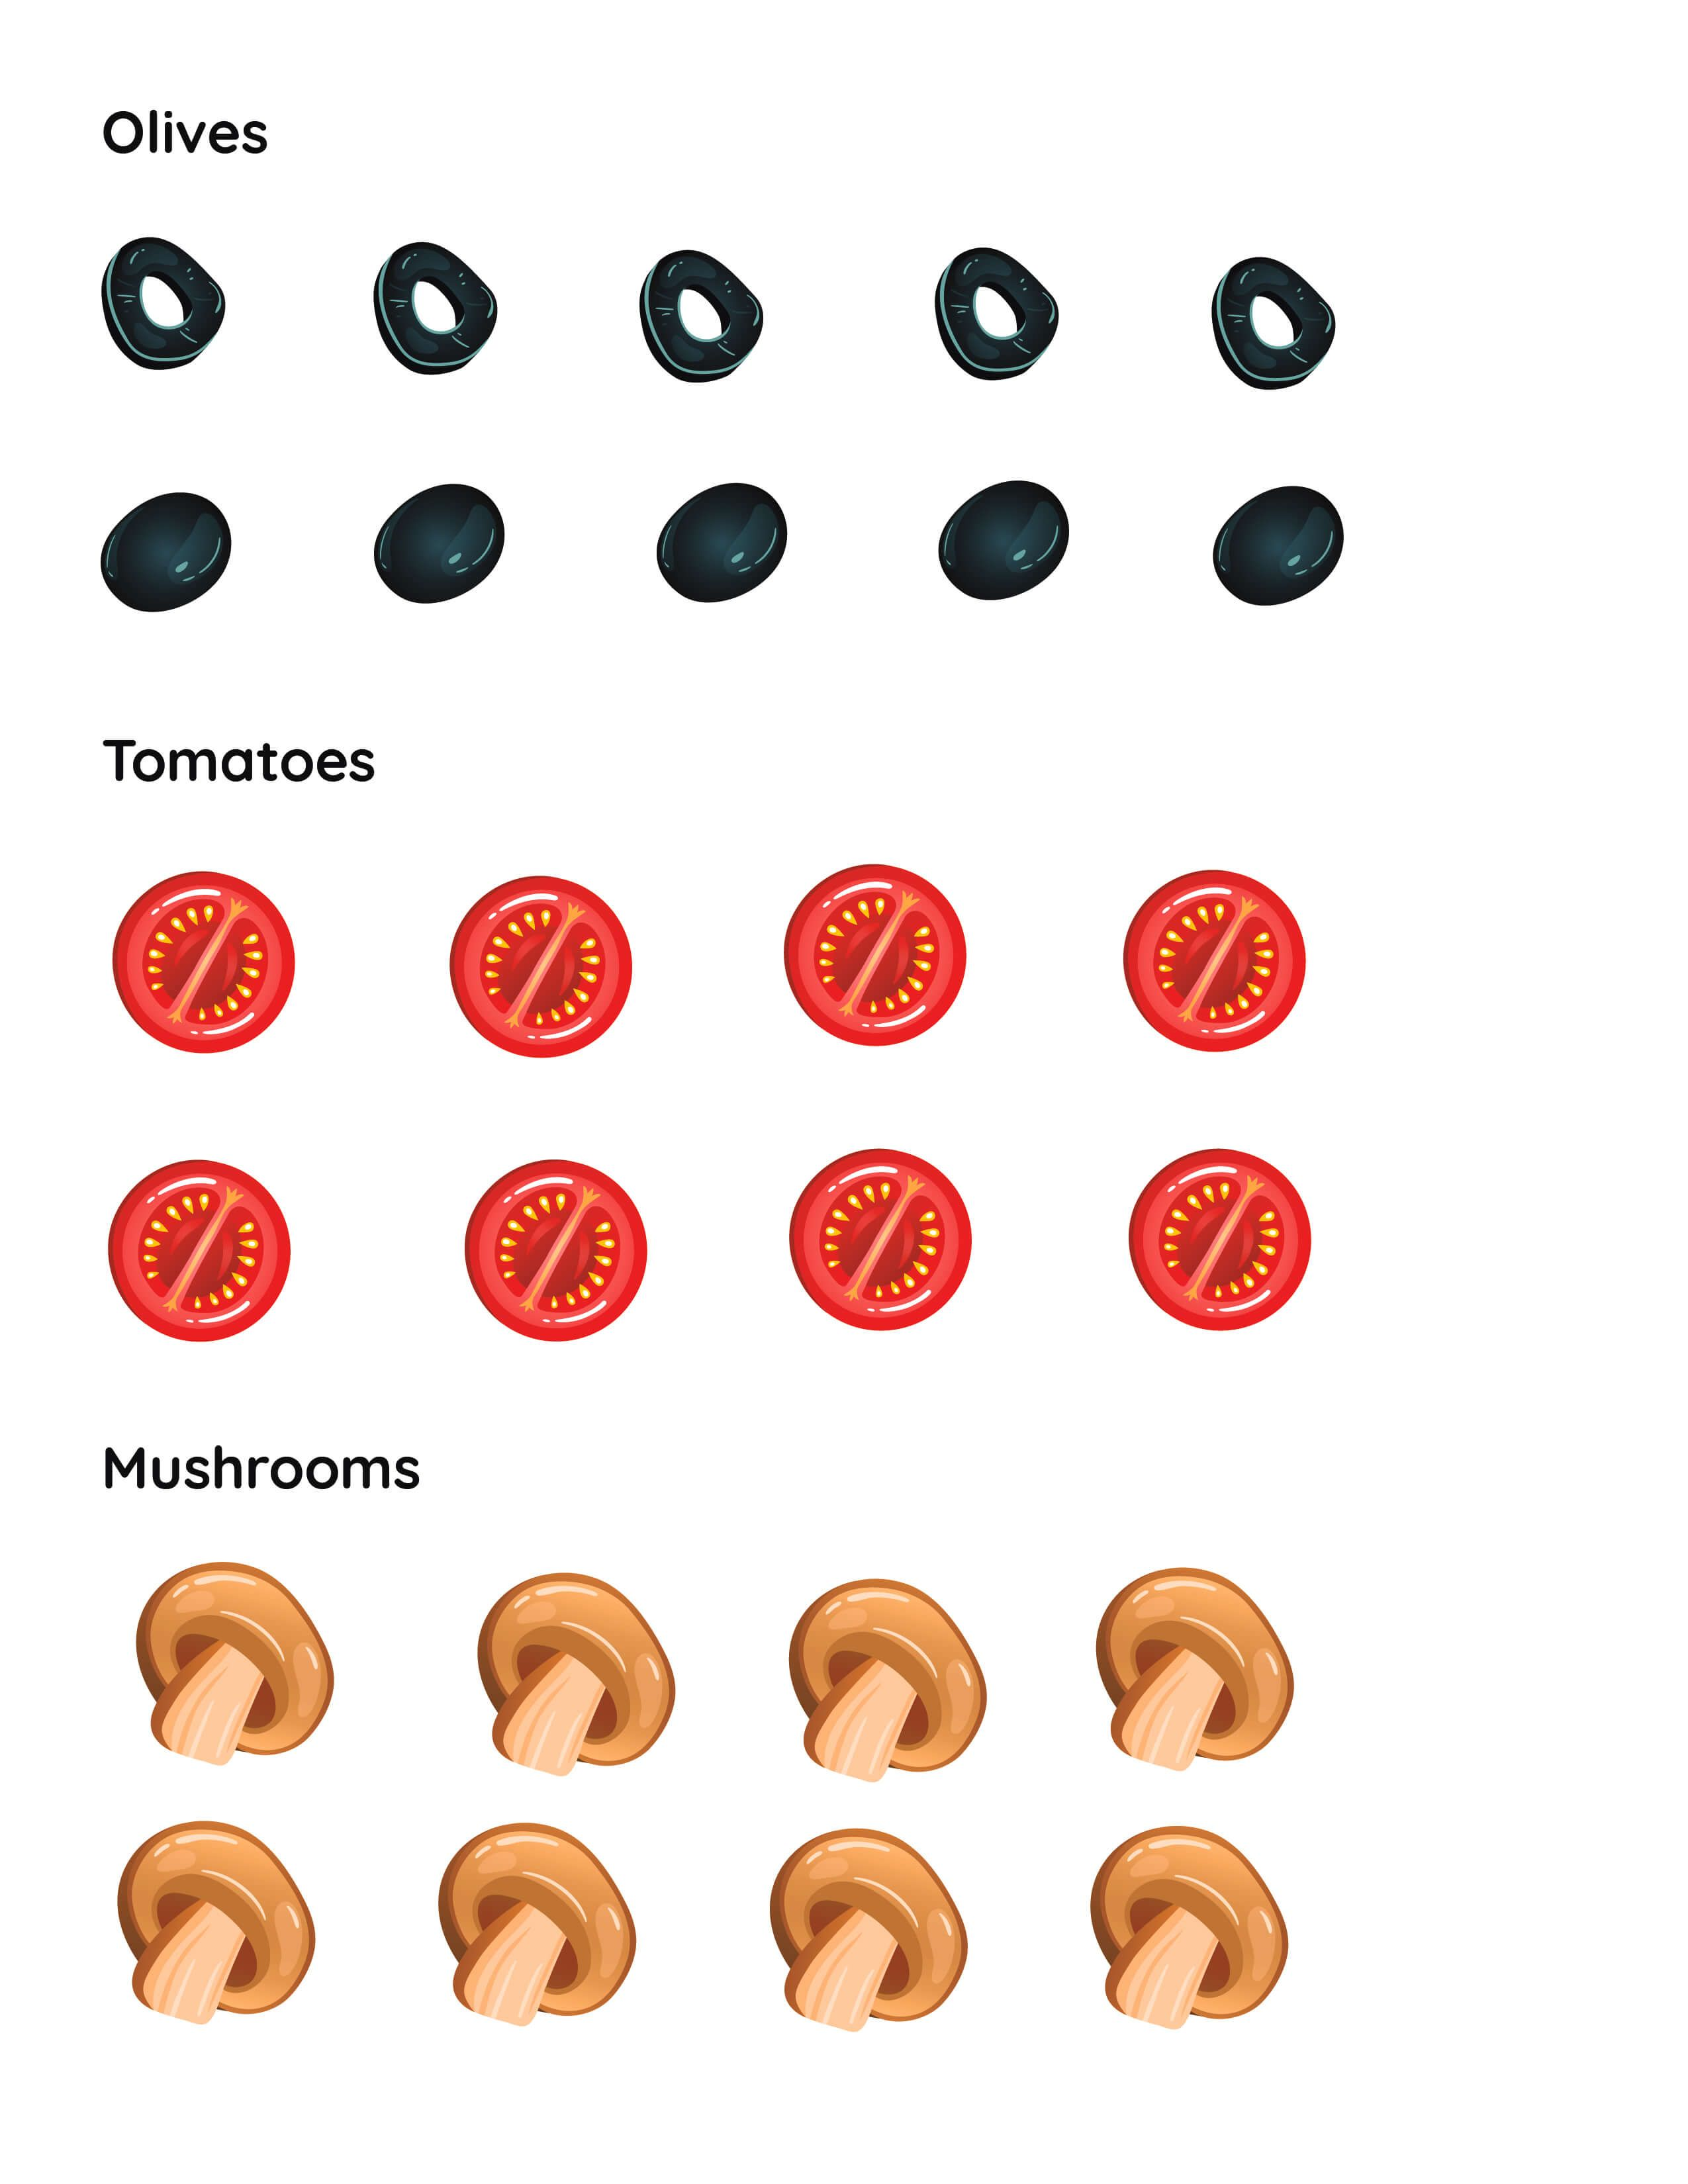 Make A Pizza Printable Pizza Toppings Cutouts Mrs Merry In 2021 How To Make Pizza Pizza Craft Pizza Toppings [ 3300 x 2550 Pixel ]